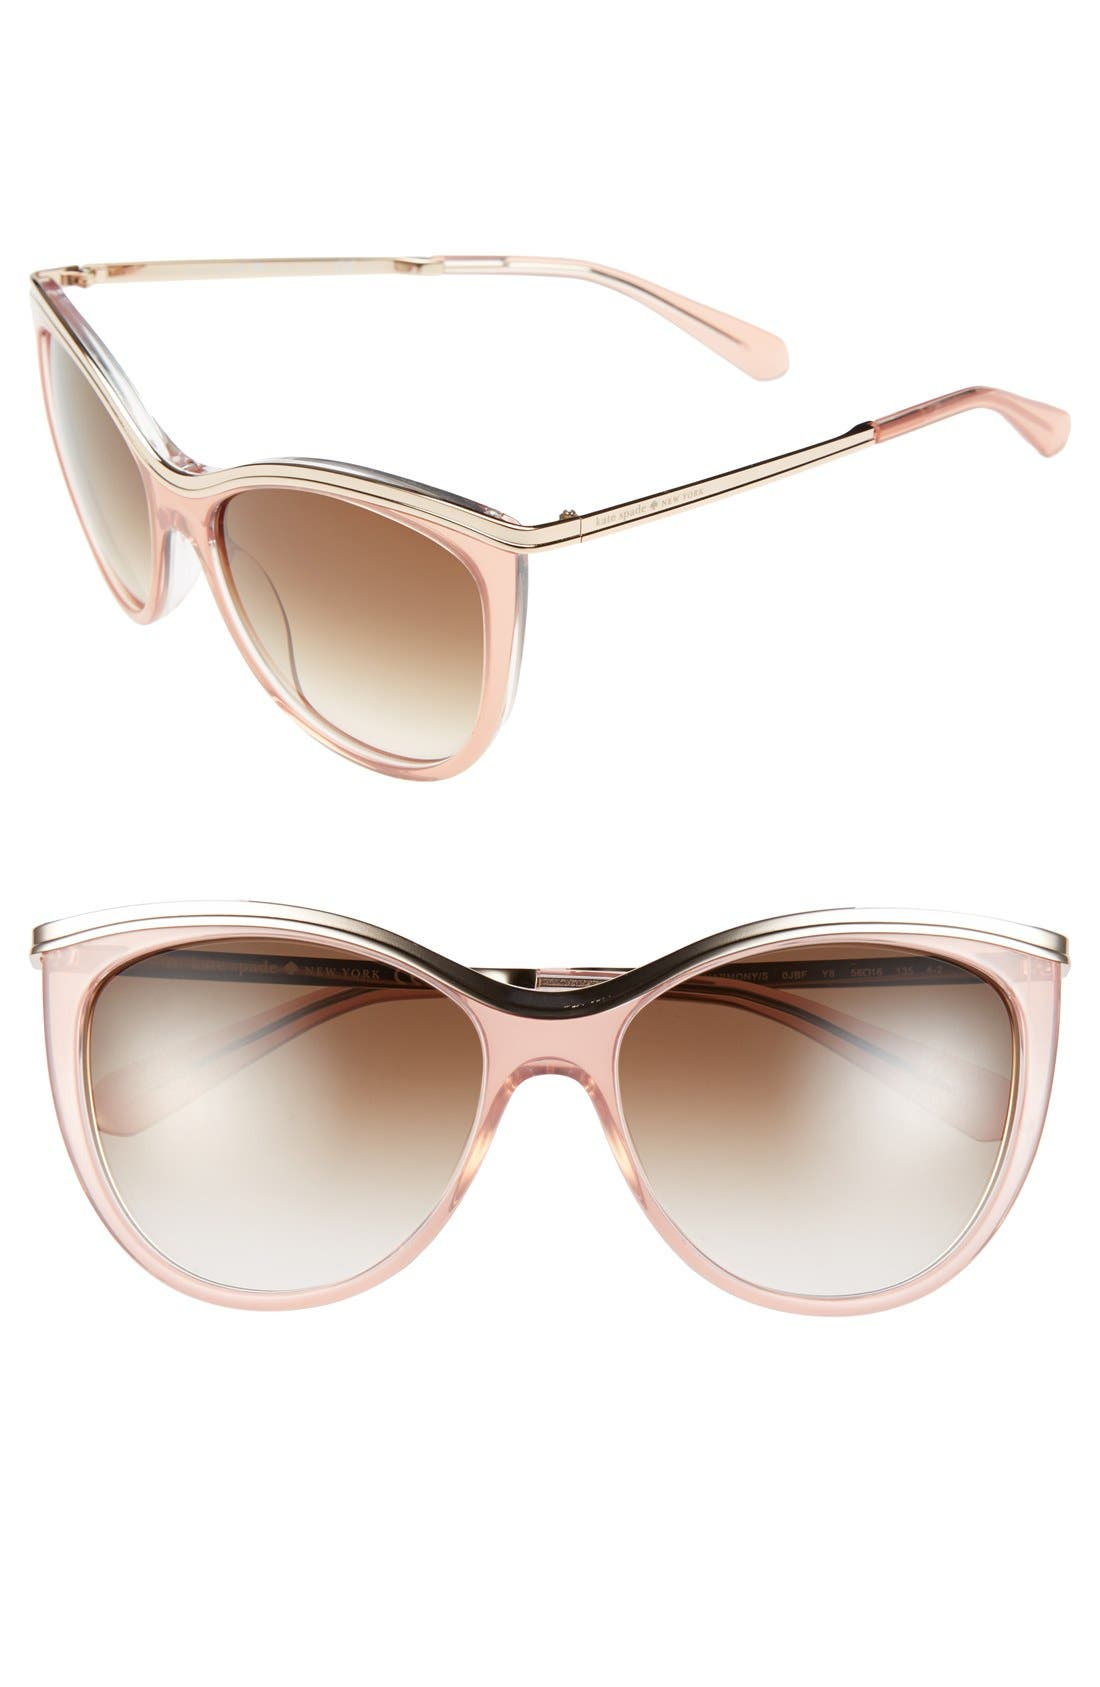 Main Image - kate spade new york 56mm cat eye sunglasses